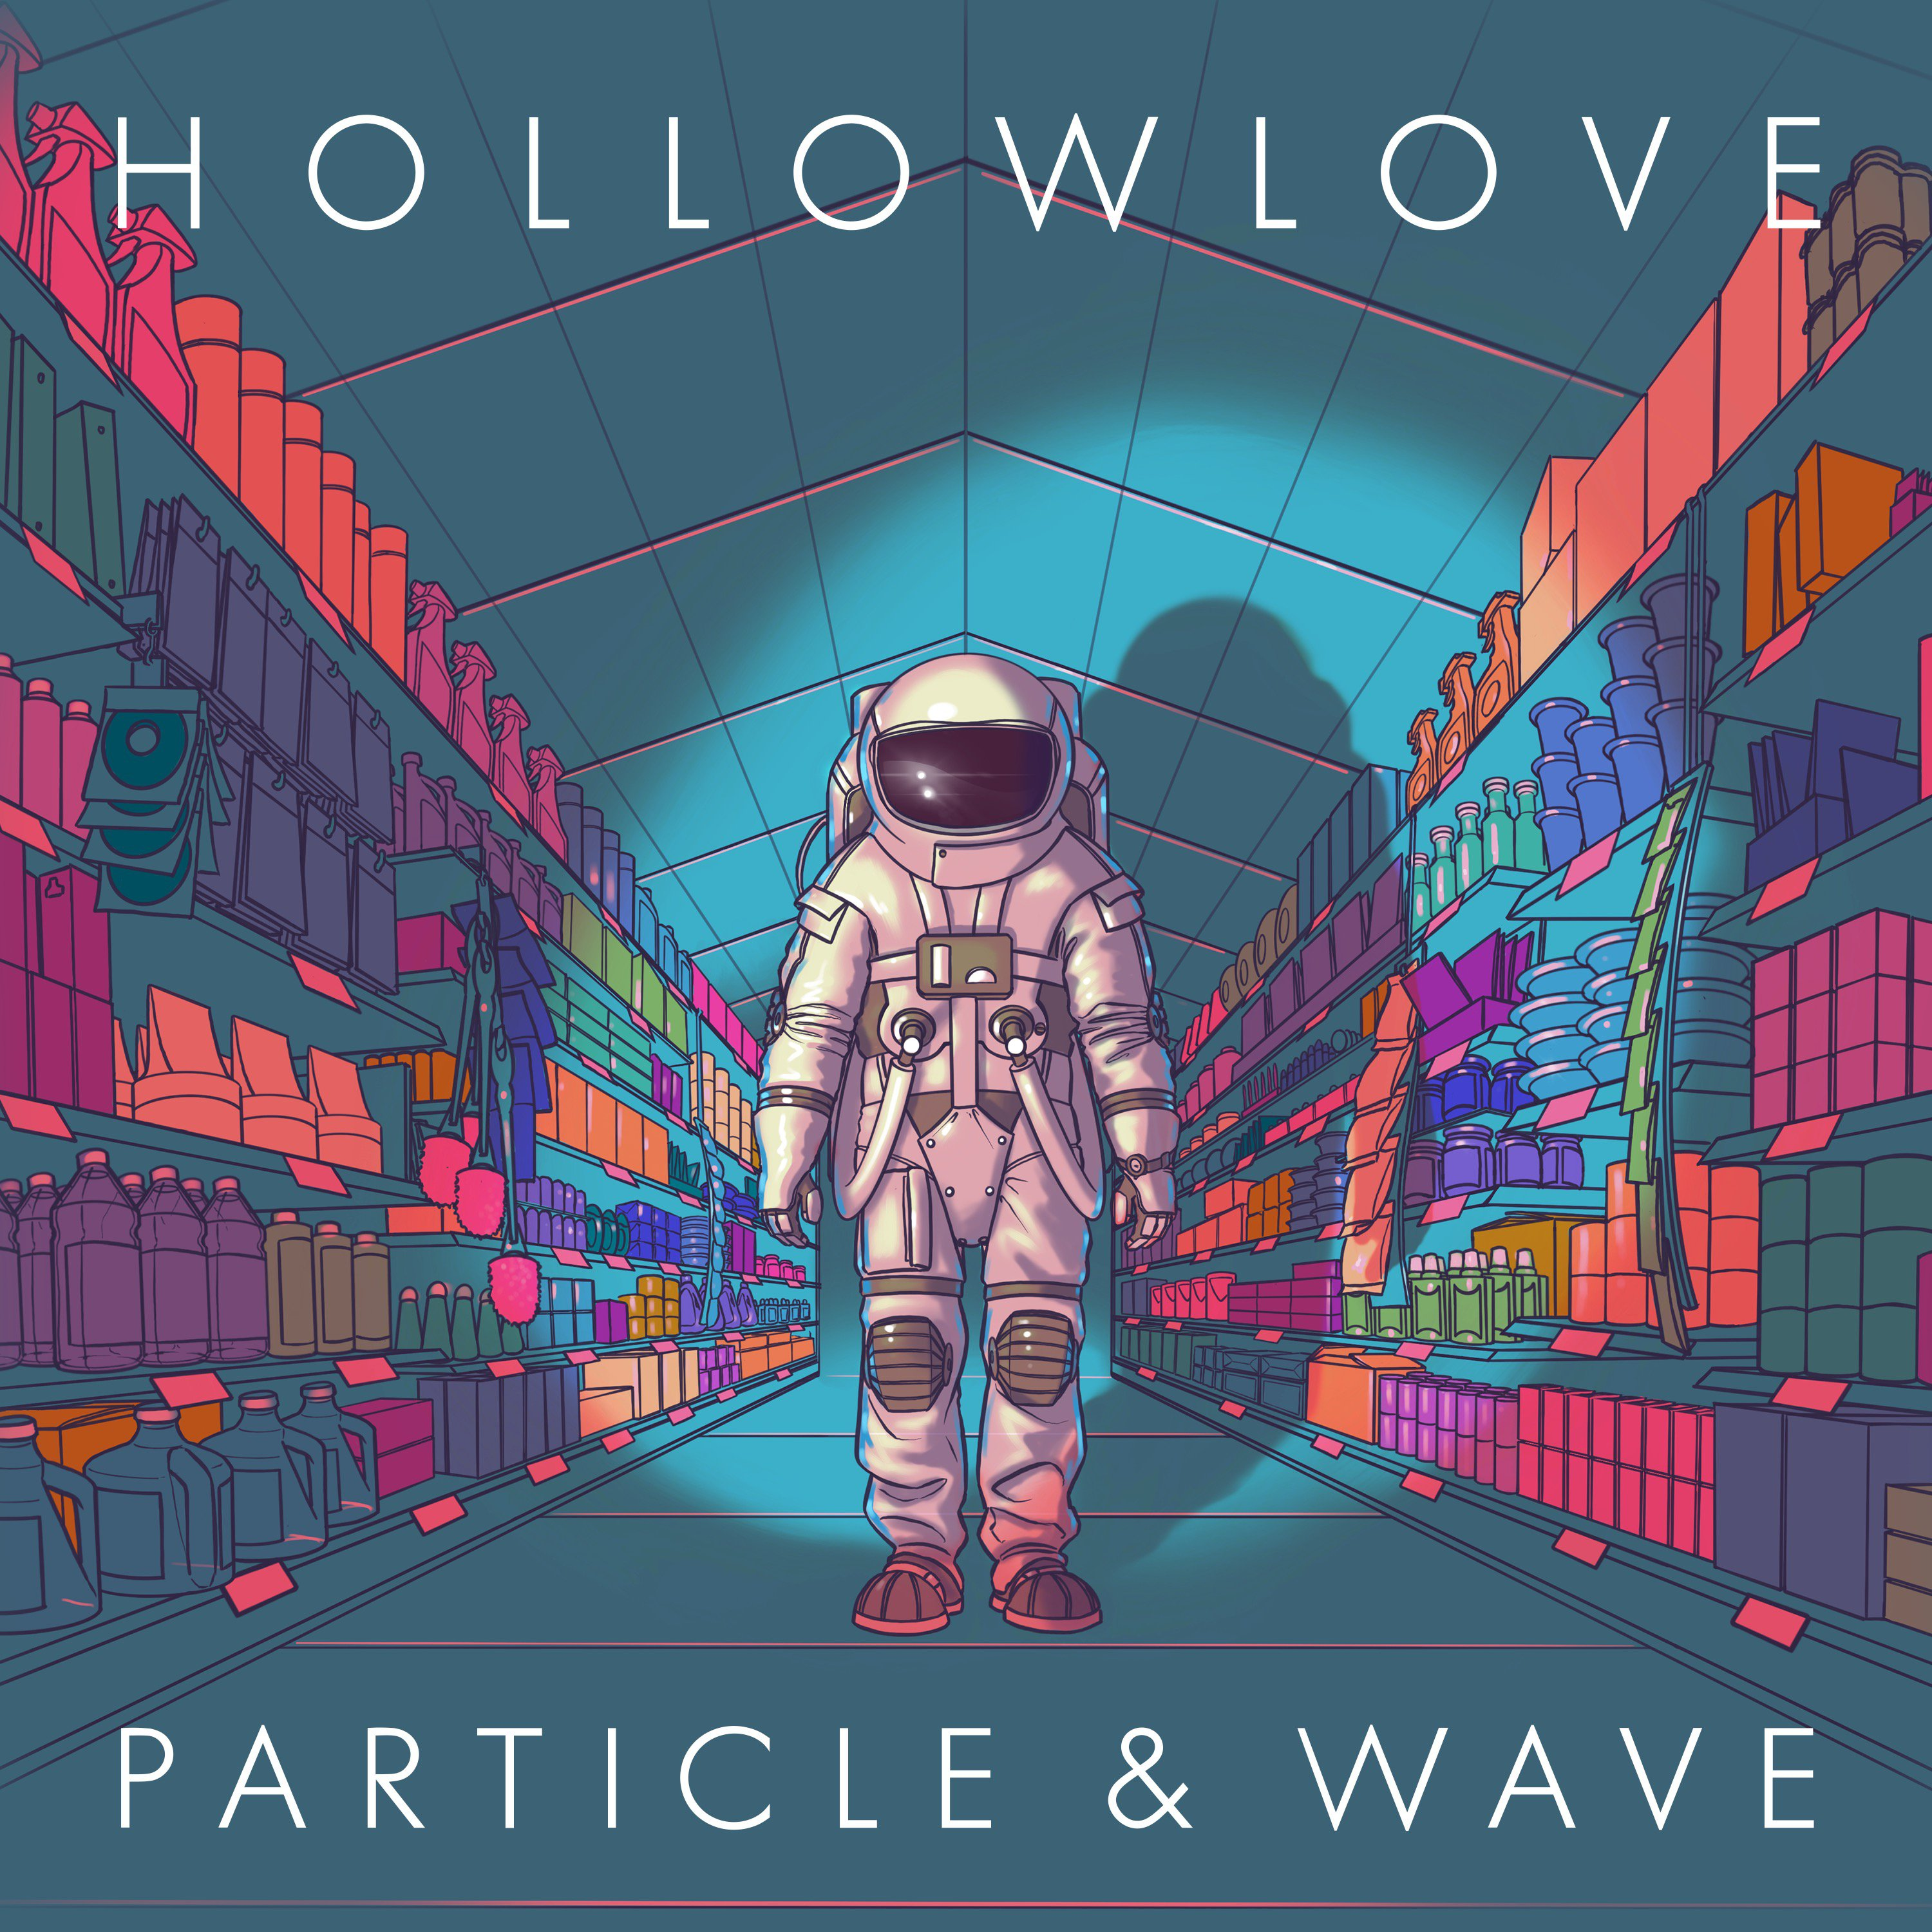 hollowlove-particle-wave